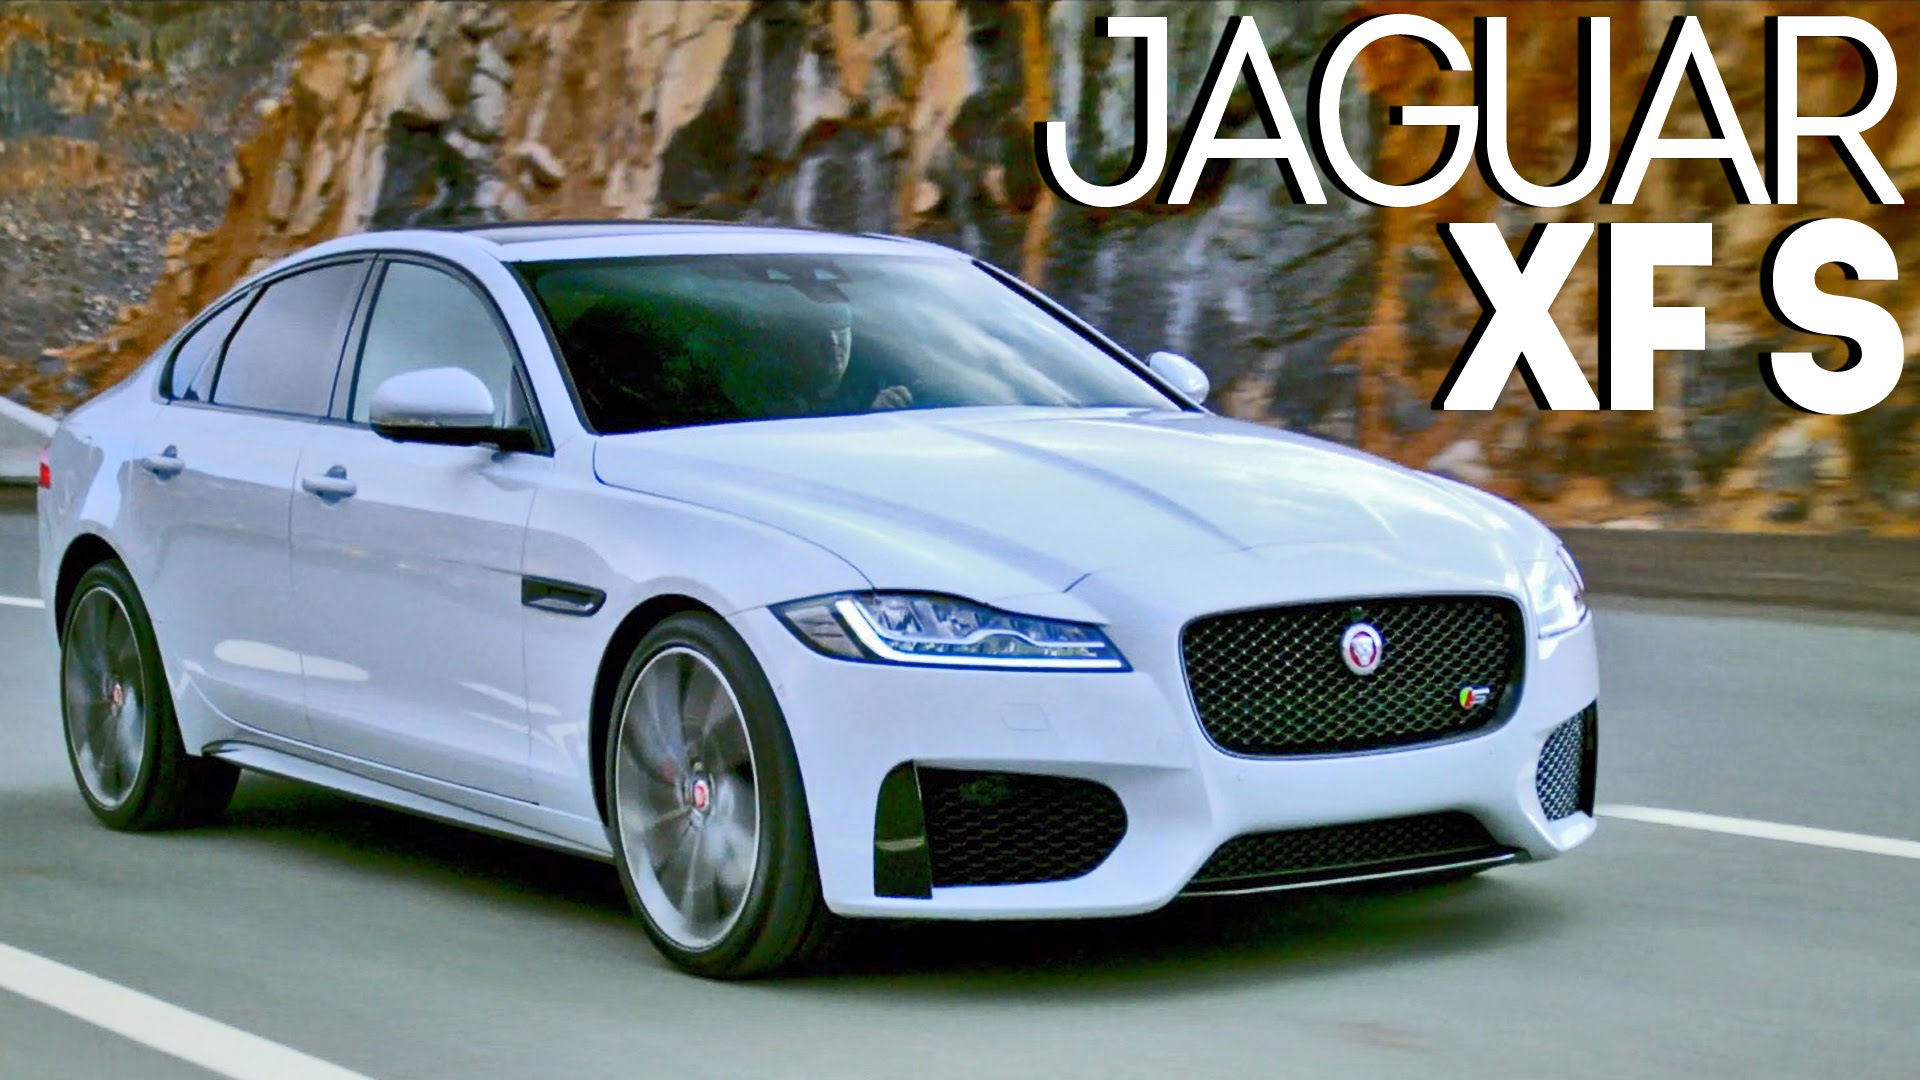 2016 Jaguar XF S - Official trailer